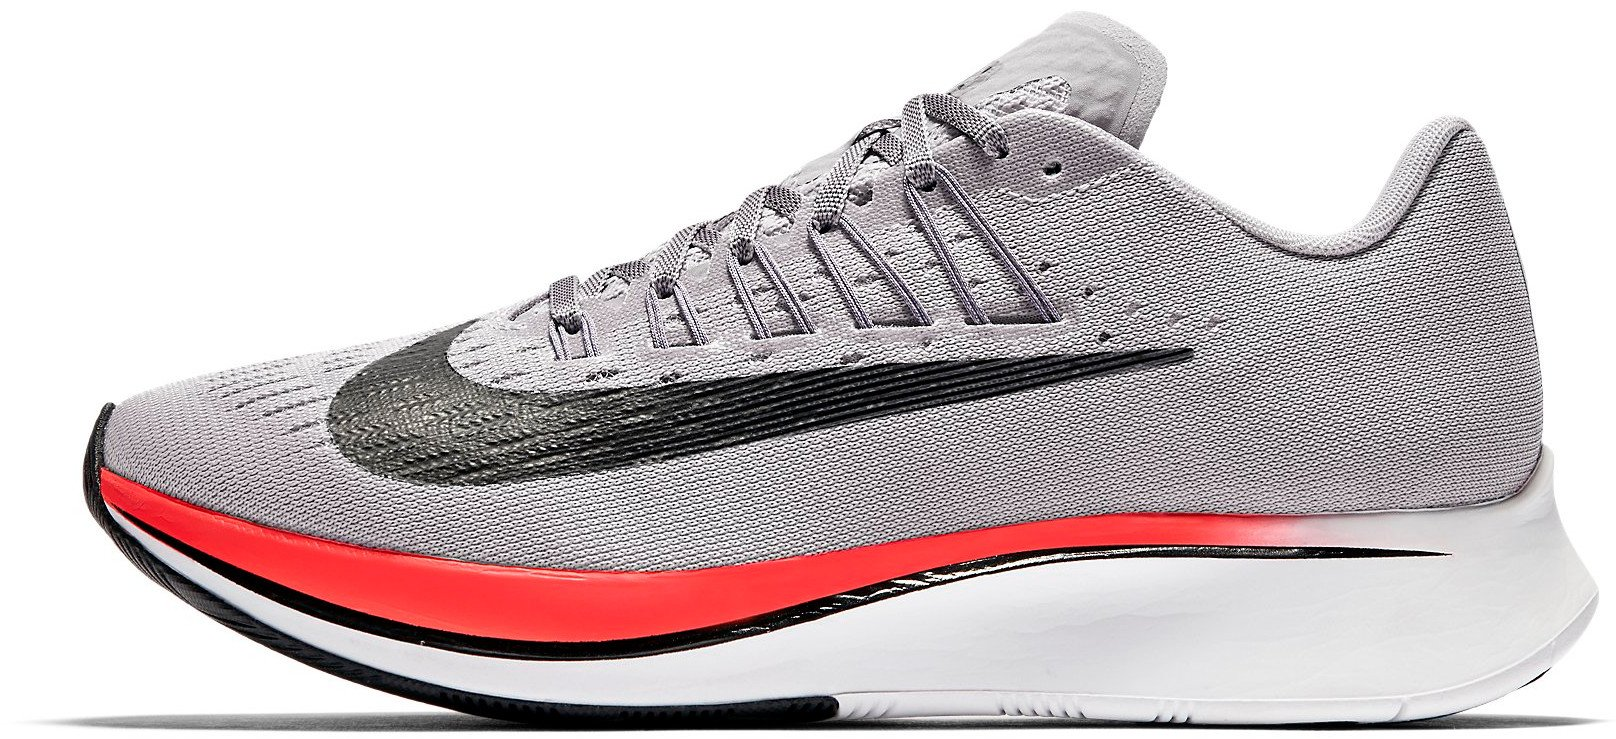 Running shoes Nike WMNS ZOOM FLY